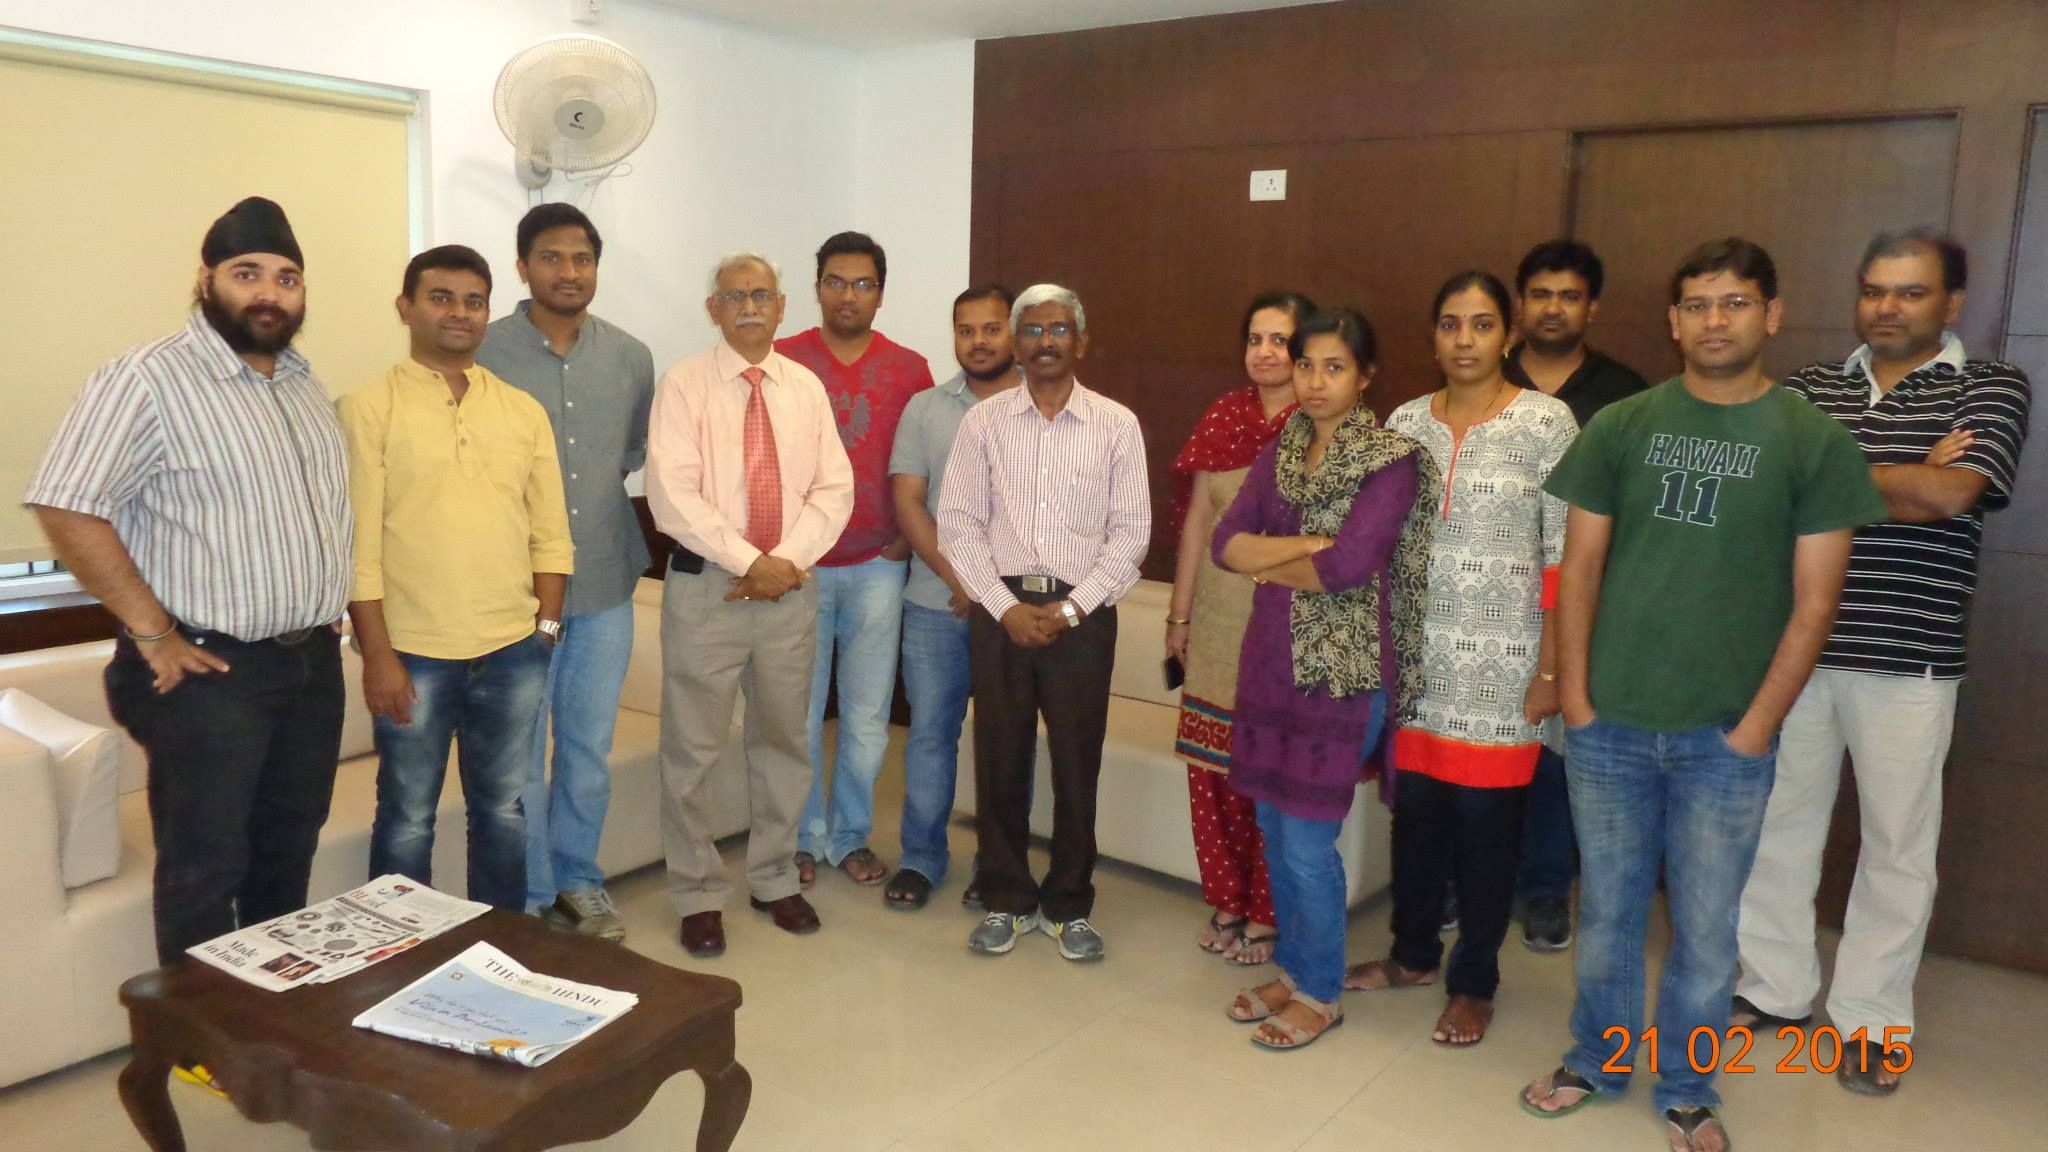 Httpproventuresindiahome we conduct provide pmp trainings httpproventuresindiahome we conduct provide pmp trainings and certification 1betcityfo Gallery